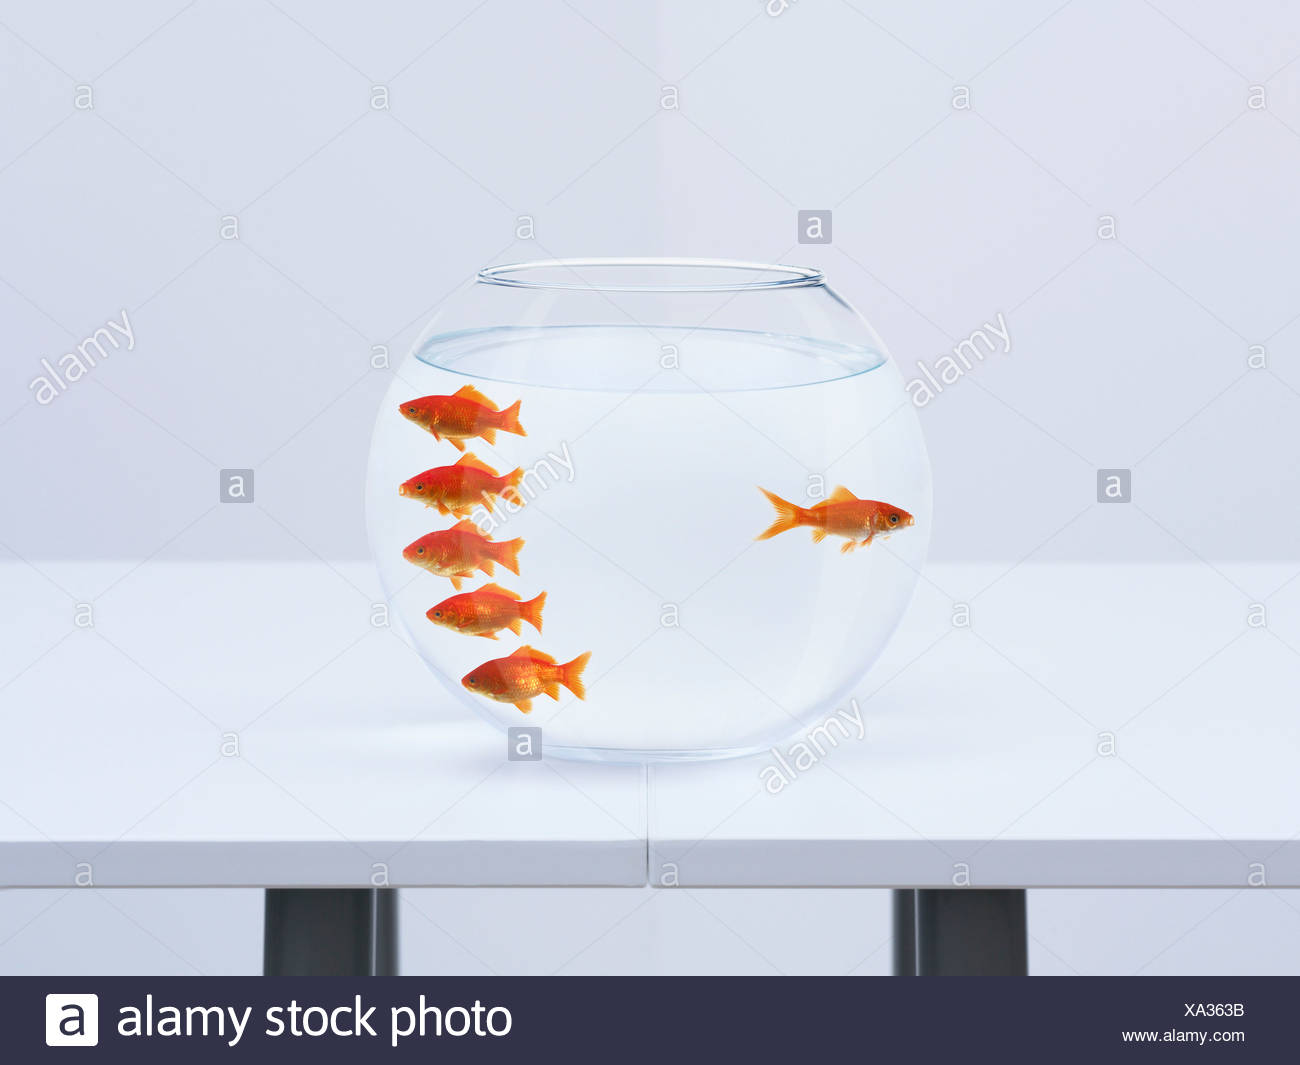 Goldfish separating from crowd in fishbowl - Stock Image